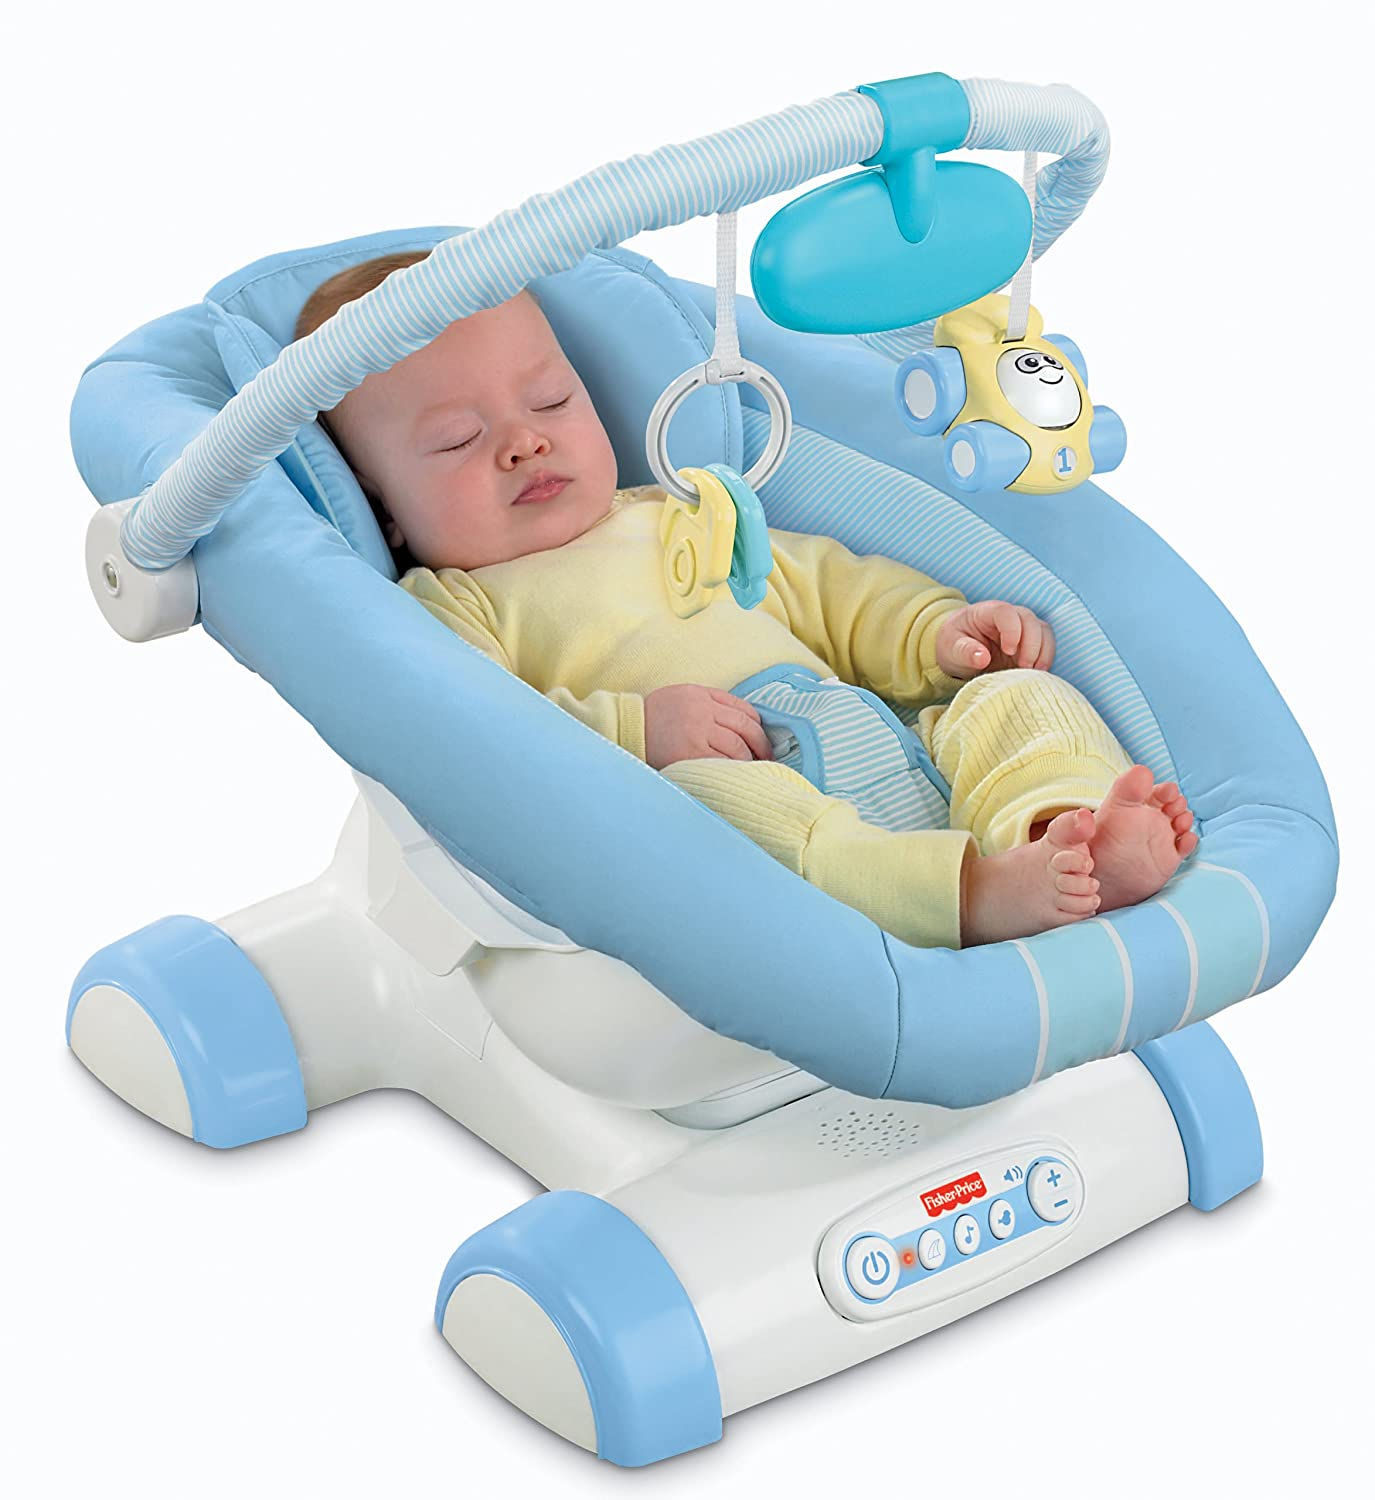 Amazon.com  Fisher-Price Cruisinu0027 Motion Soother (Discontinued by Manufacturer)  Infant Bouncers And Rockers  Baby  sc 1 st  Amazon.com & Amazon.com : Fisher-Price Cruisinu0027 Motion Soother (Discontinued by ...